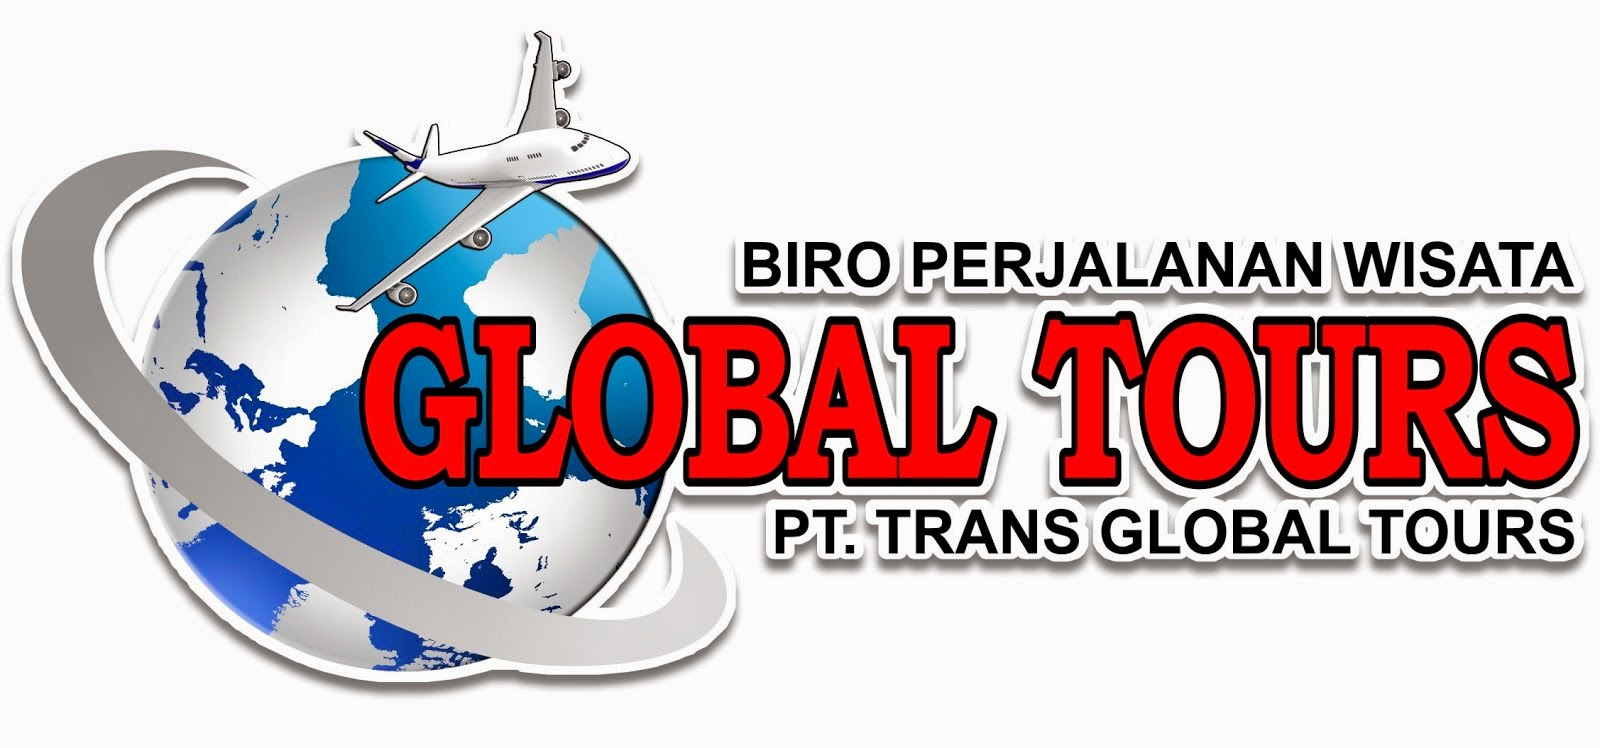 TRANS GLOBAL TOUR TRAVEL